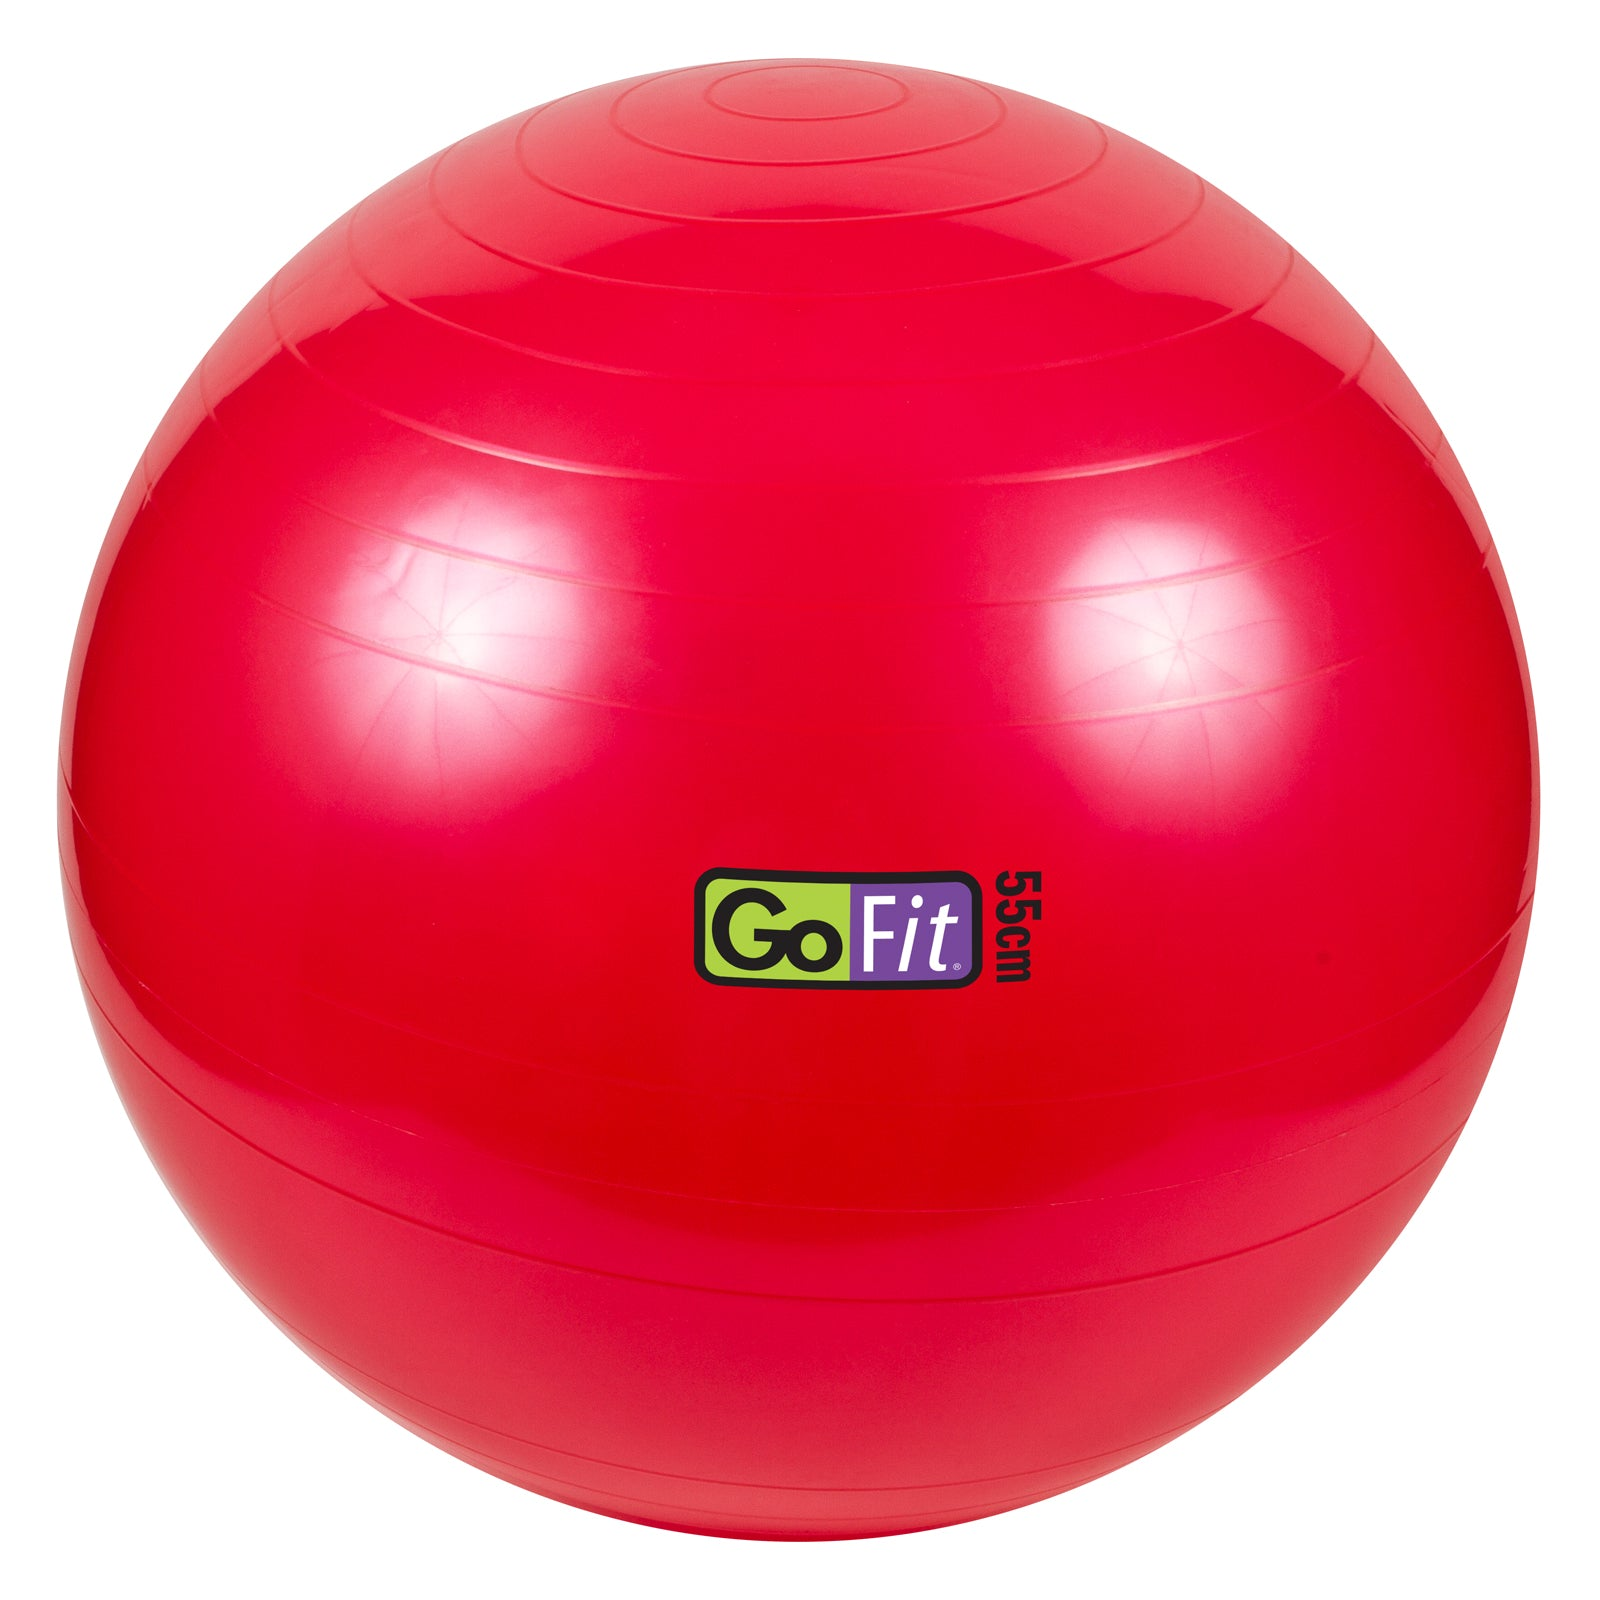 go fit birthing ball